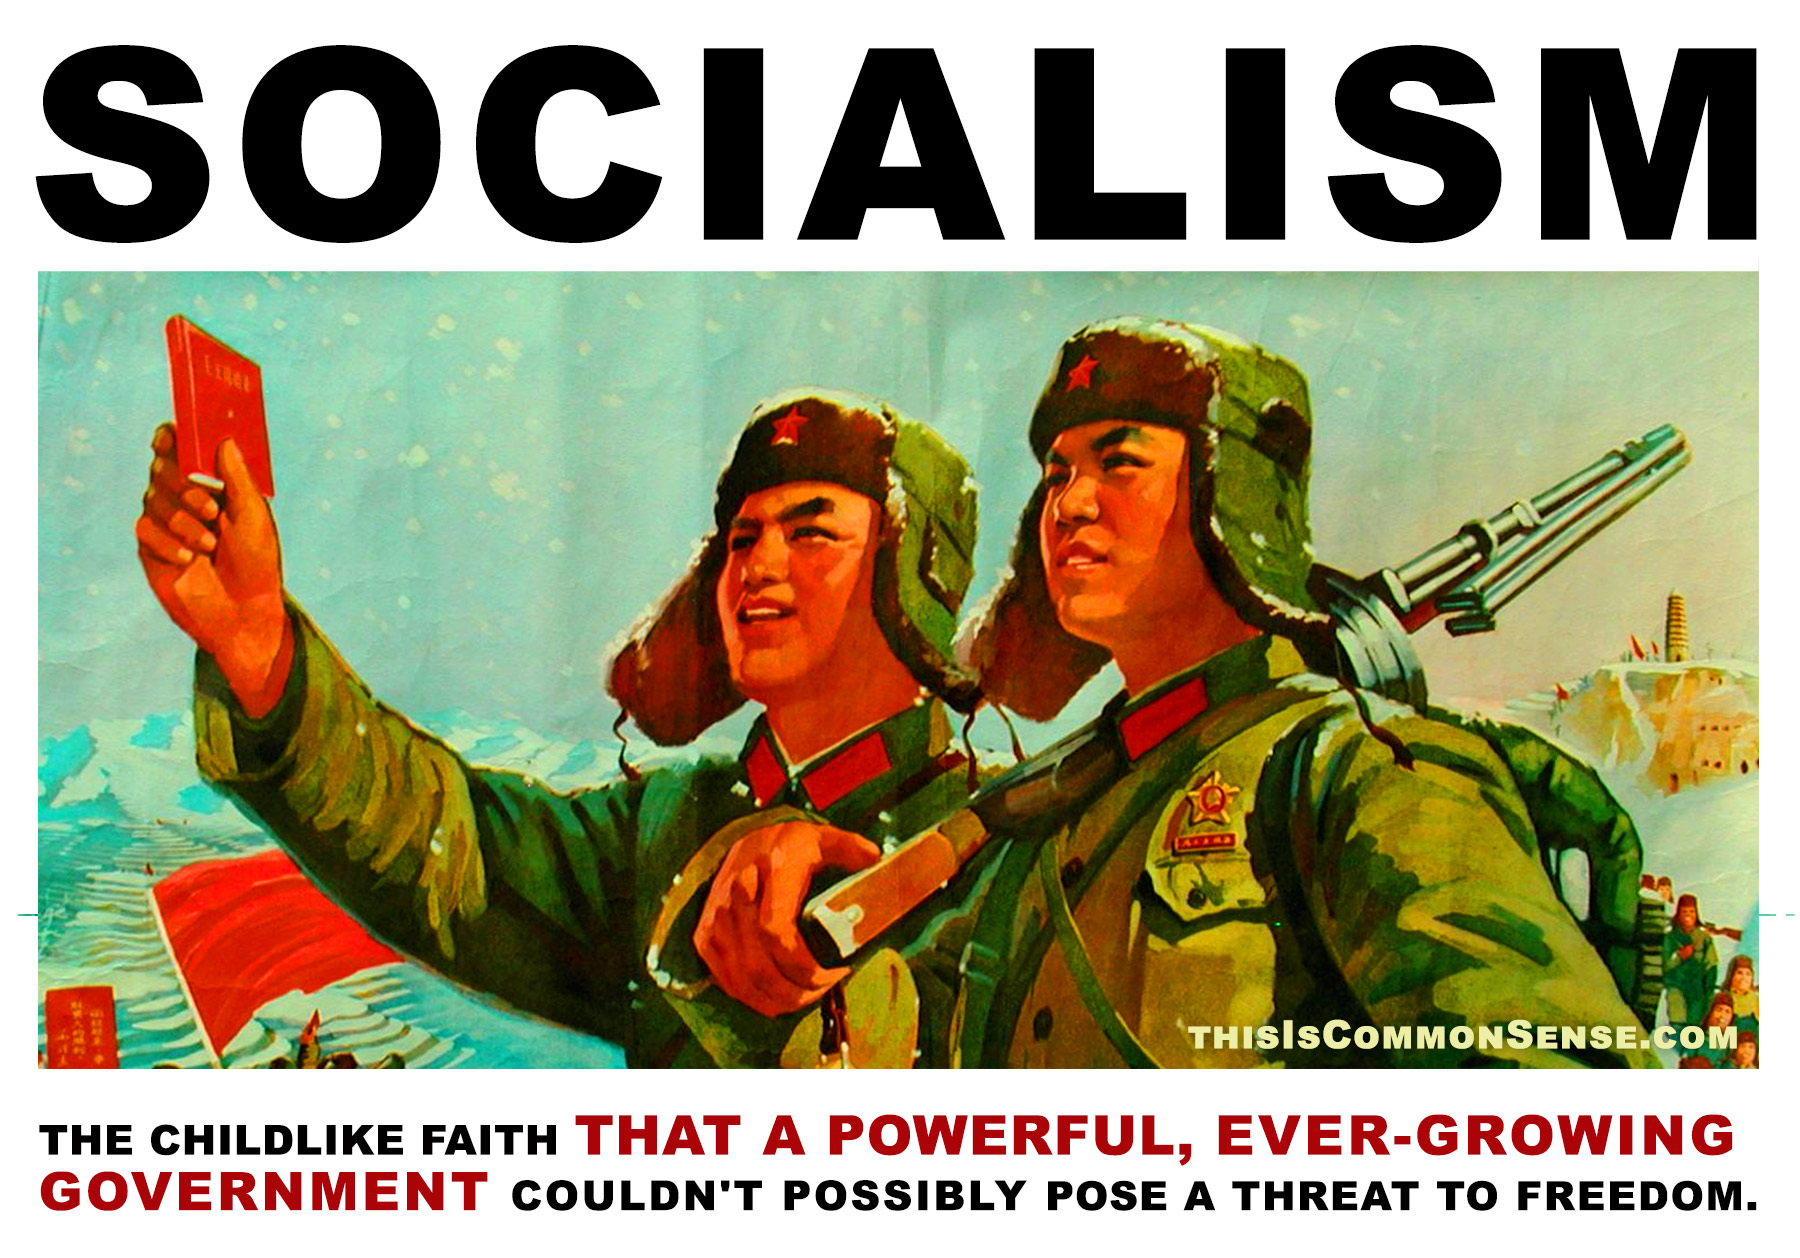 socialism, childlike faith, government, power, progressivism, Paul Jacob, Jim Gill, Common Sense, meme, illustration